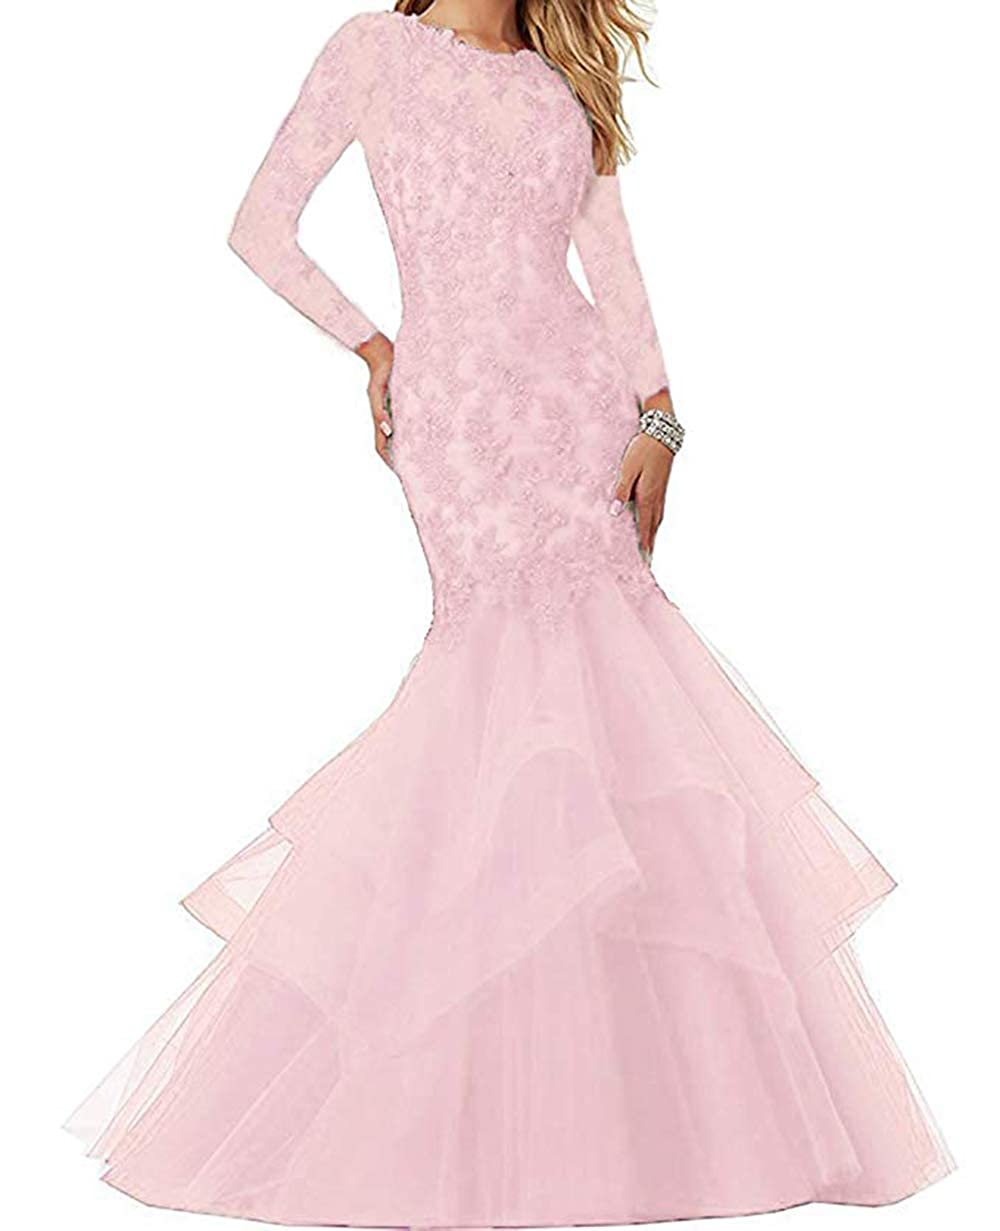 Pale Pink Women's Mermaid Prom Dresses Beaded Lace Appliques Formal Evening Gowns Long Sleeves